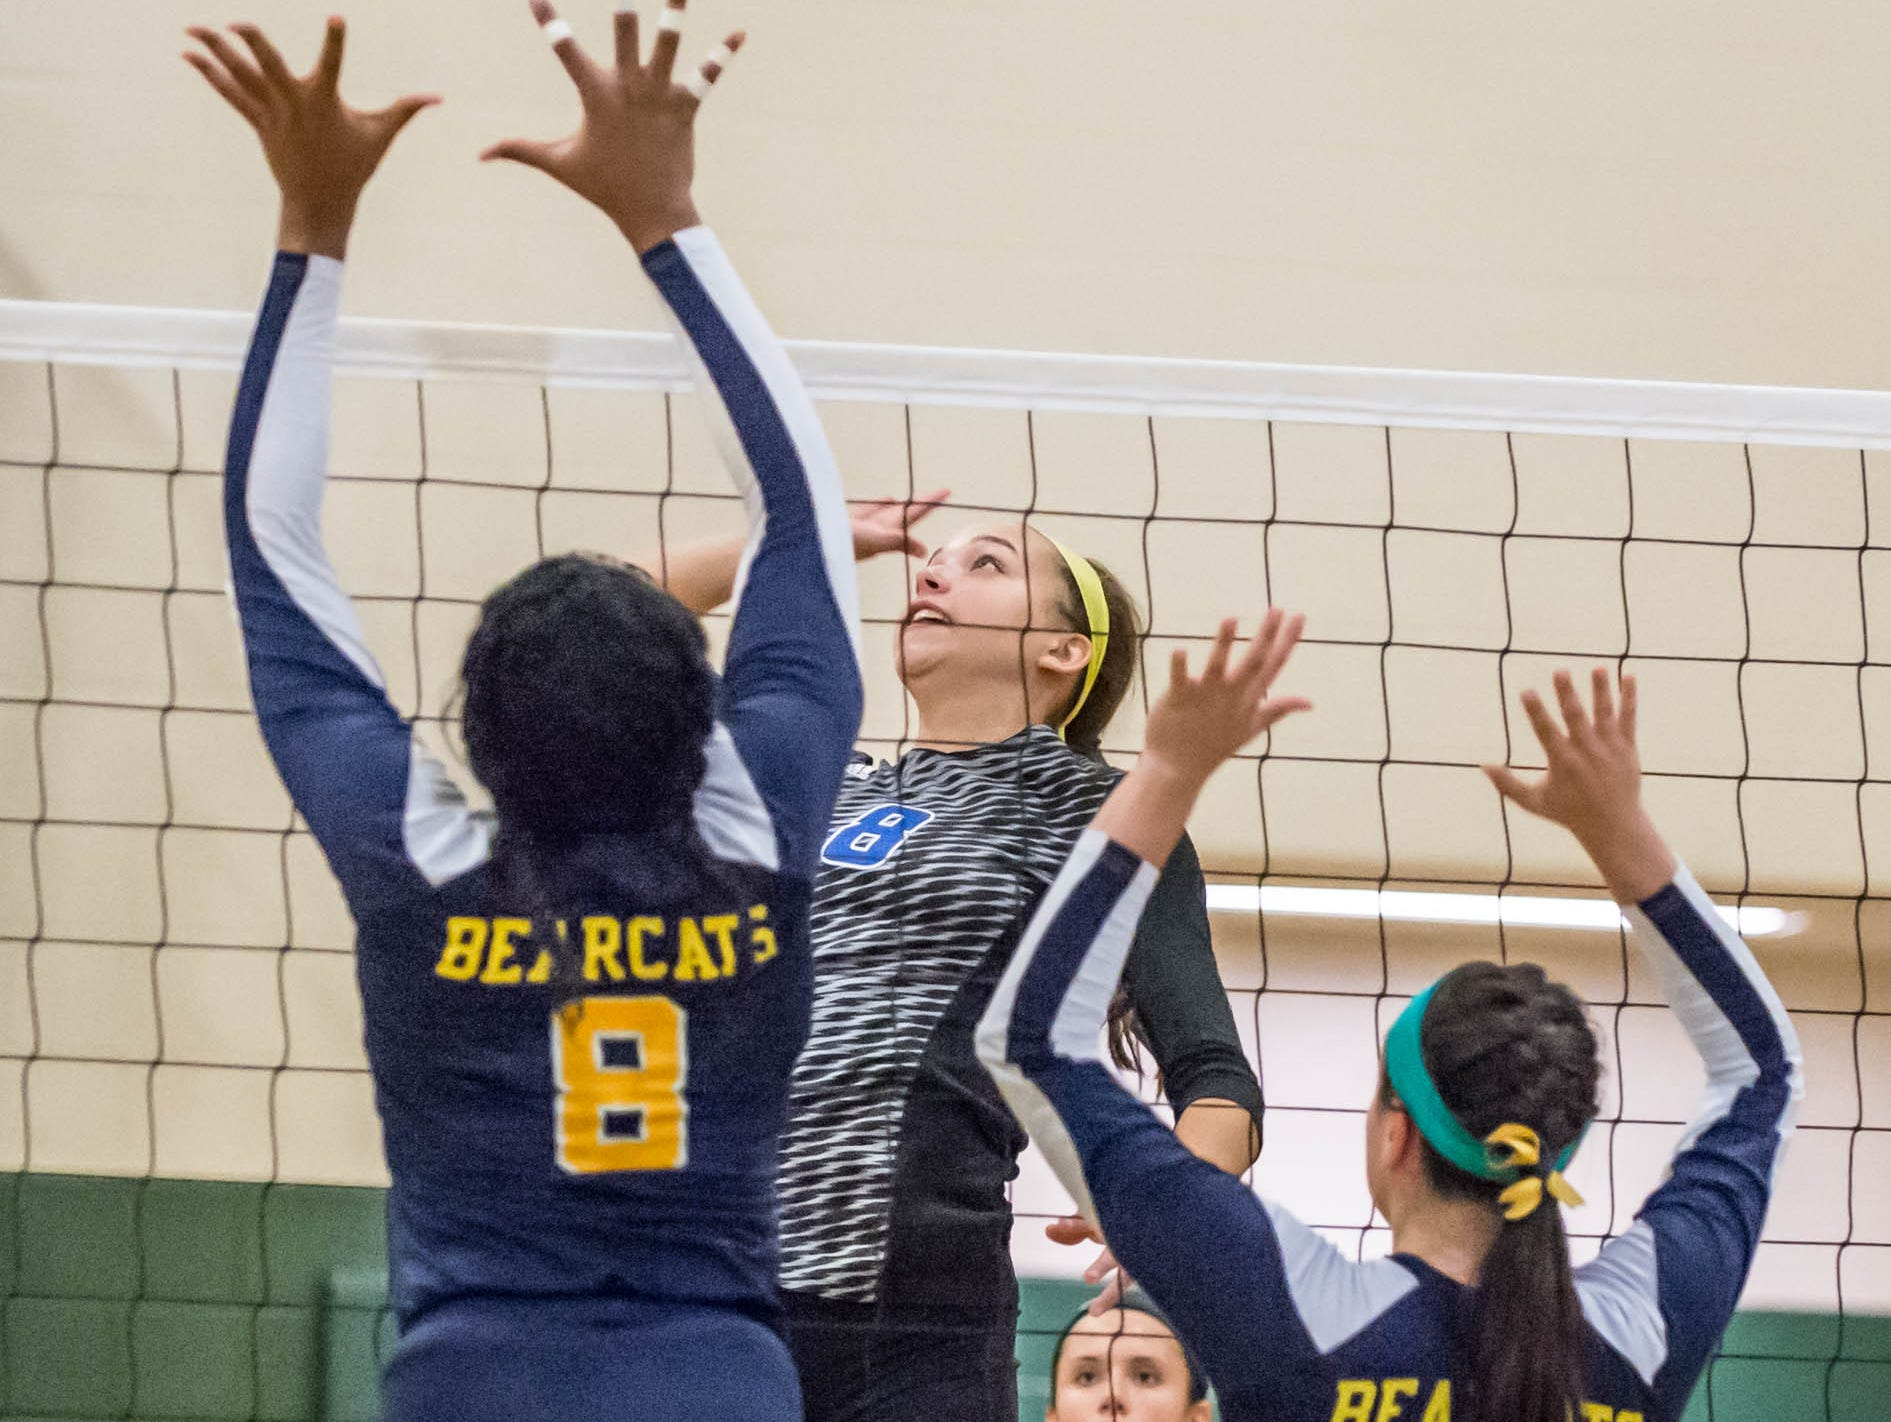 Harper Creek's Charley Andrews (8) goes for the point over the Bearcat's Jamesha Smith (8) and Mya Trevino (5) at the All-city volleyball tourney on Saturday.